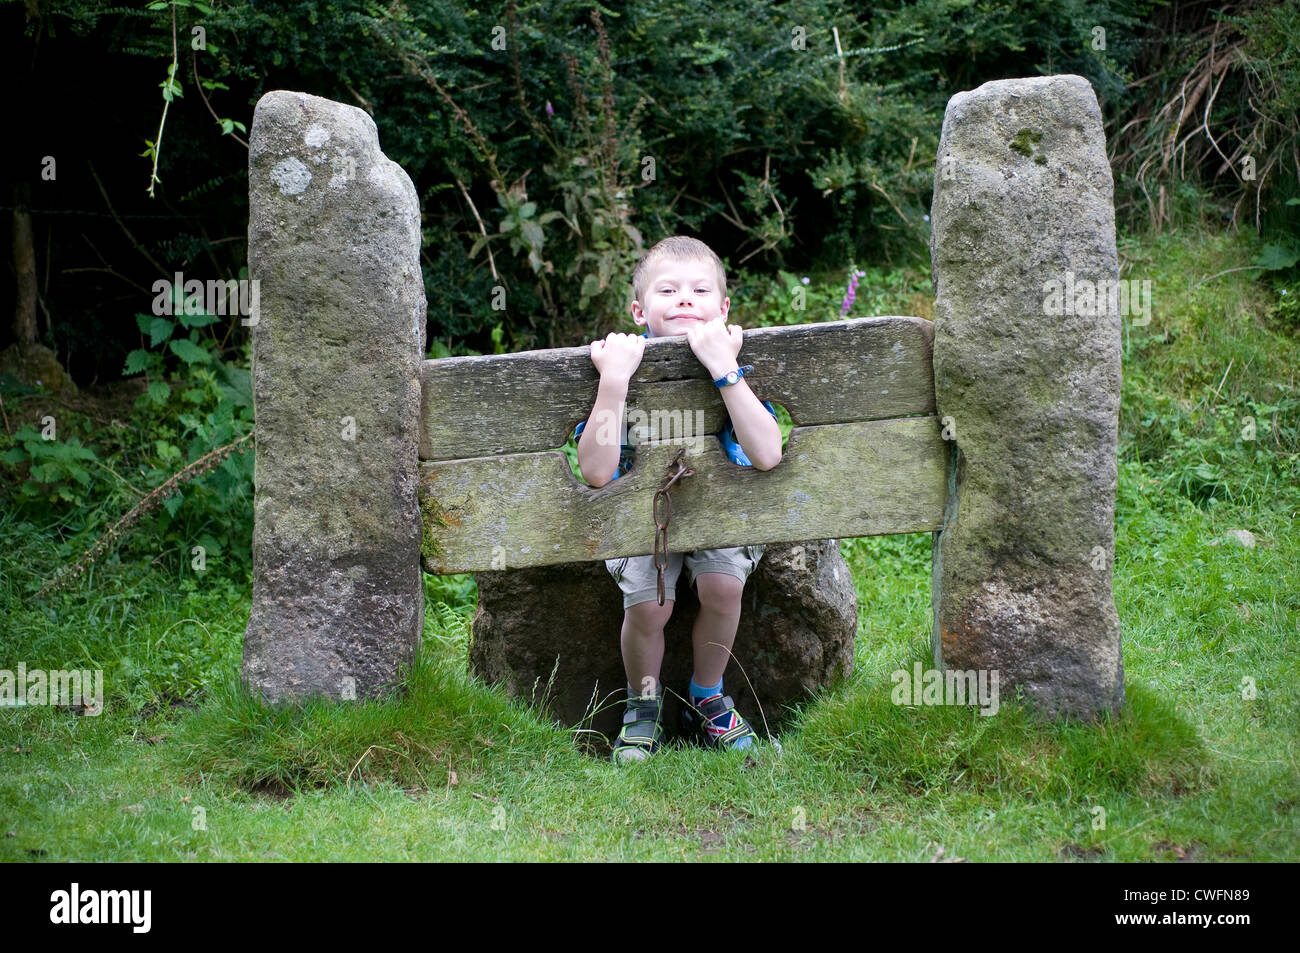 village stocks, authority, crime, criminal, england, humiliation, medieval, old, pain, penalty, police, punishment, - Stock Image